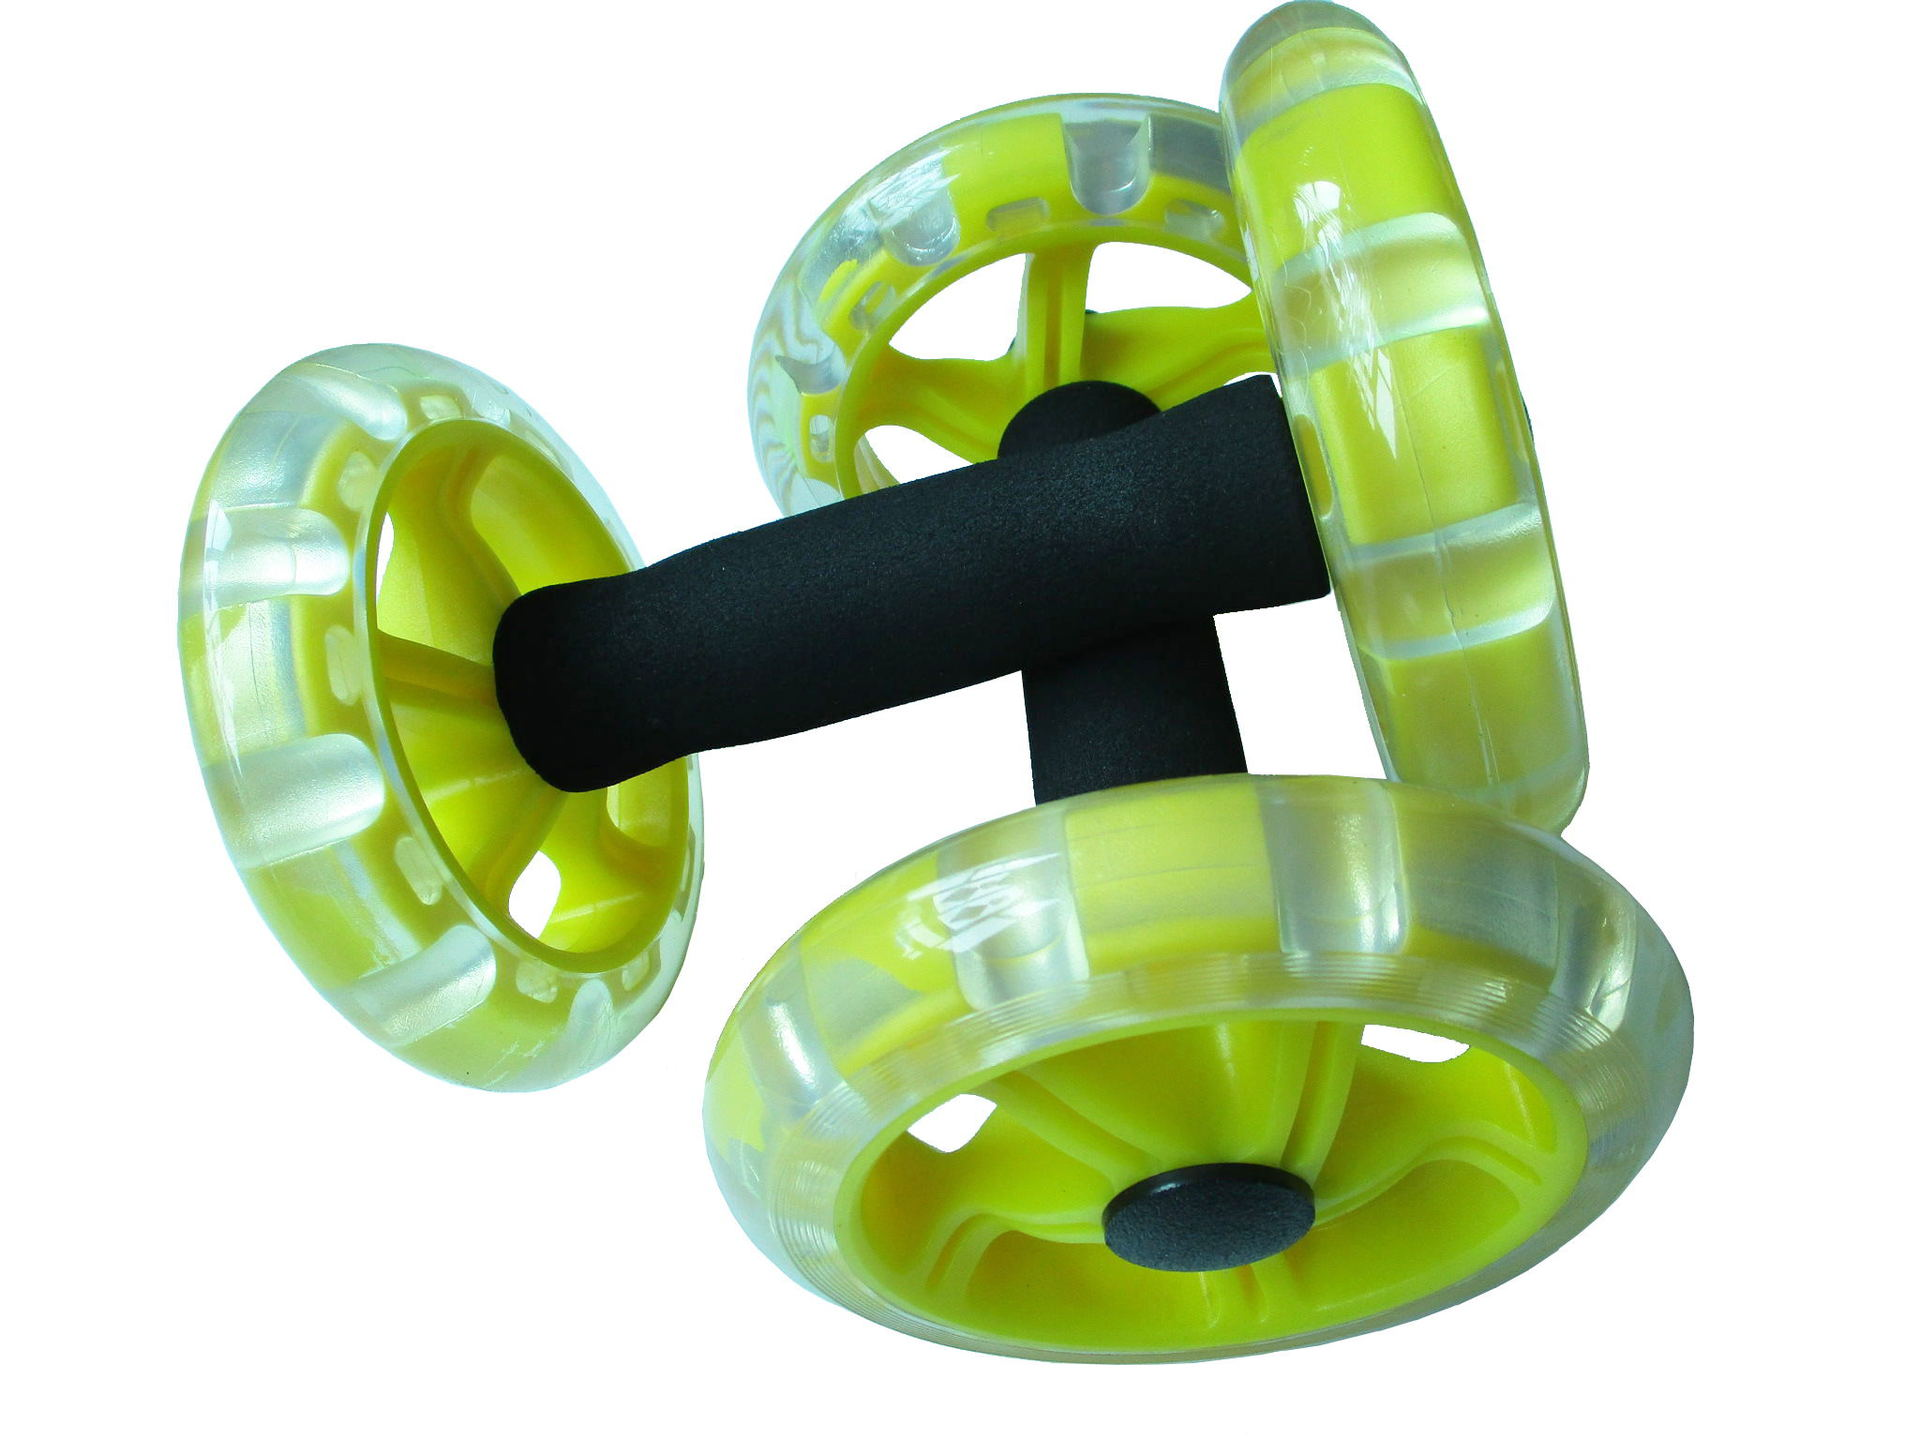 AB Wheel Rollers Four-wheeled Core Abdominal Wheels Workout for Ab Training Gym Home  yellow